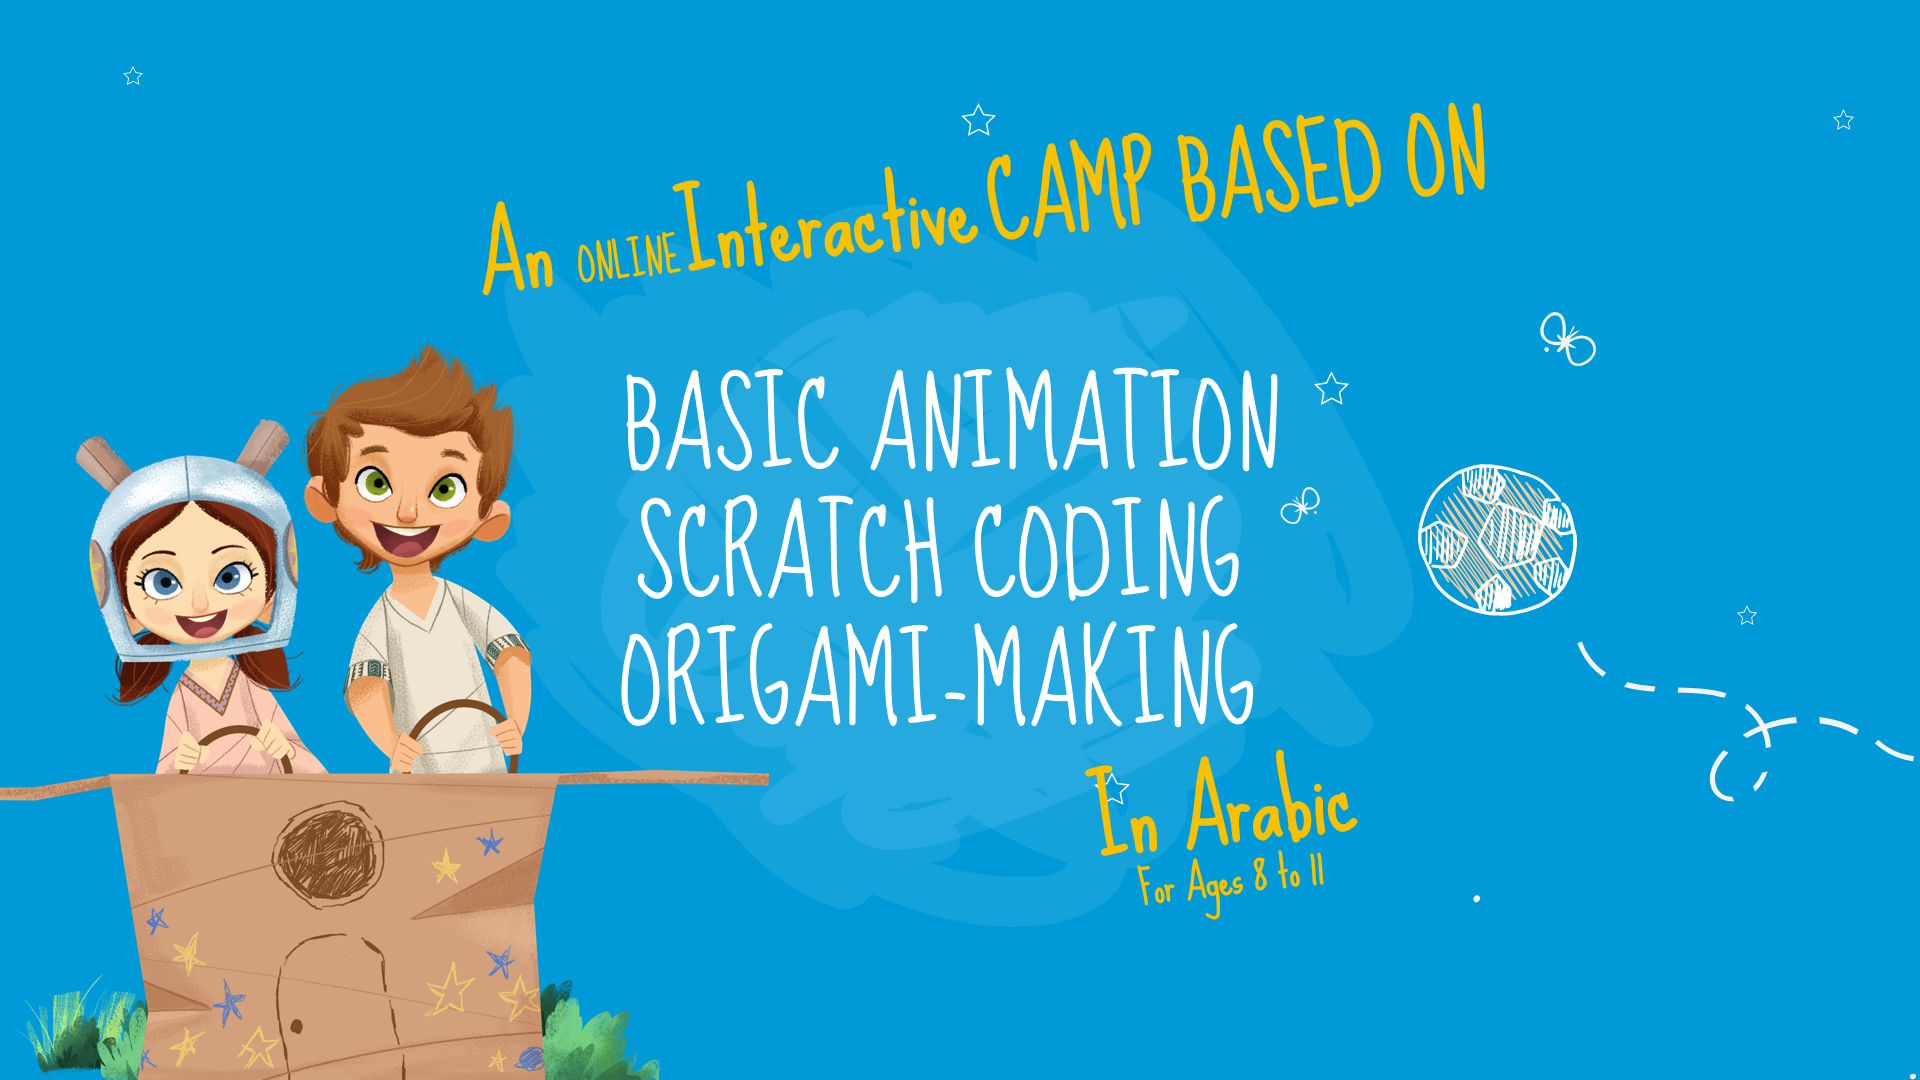 An interactive camp based on basic animation scratch coding